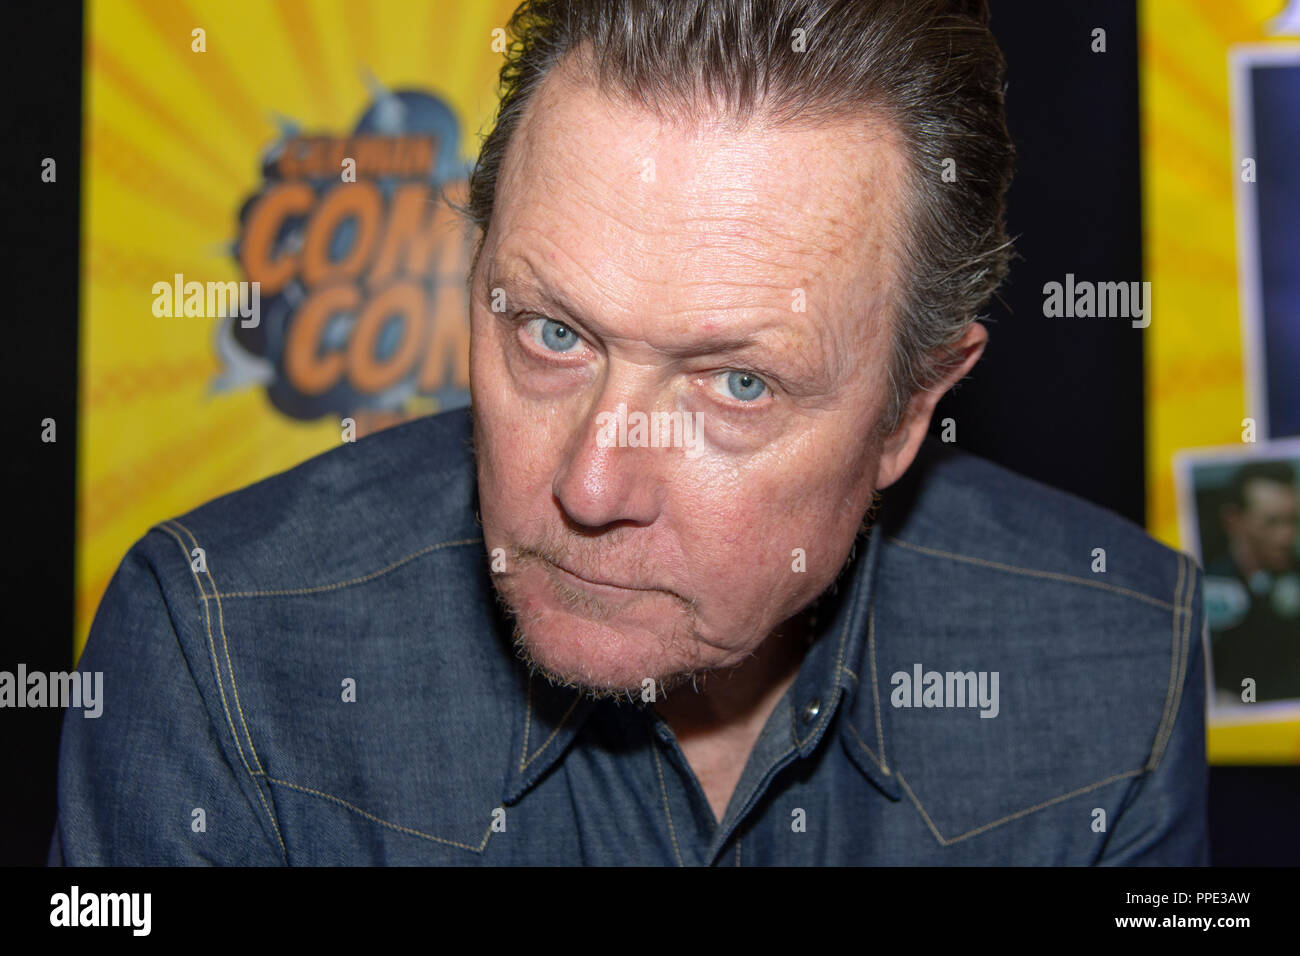 FRANKFURT, GERMANY - MAY 6th 2018: Robert Patrick (*1958, actor, The X-Files, Terminator 2) at German Comic Con Frankfurt, a two day fan convention - Stock Image